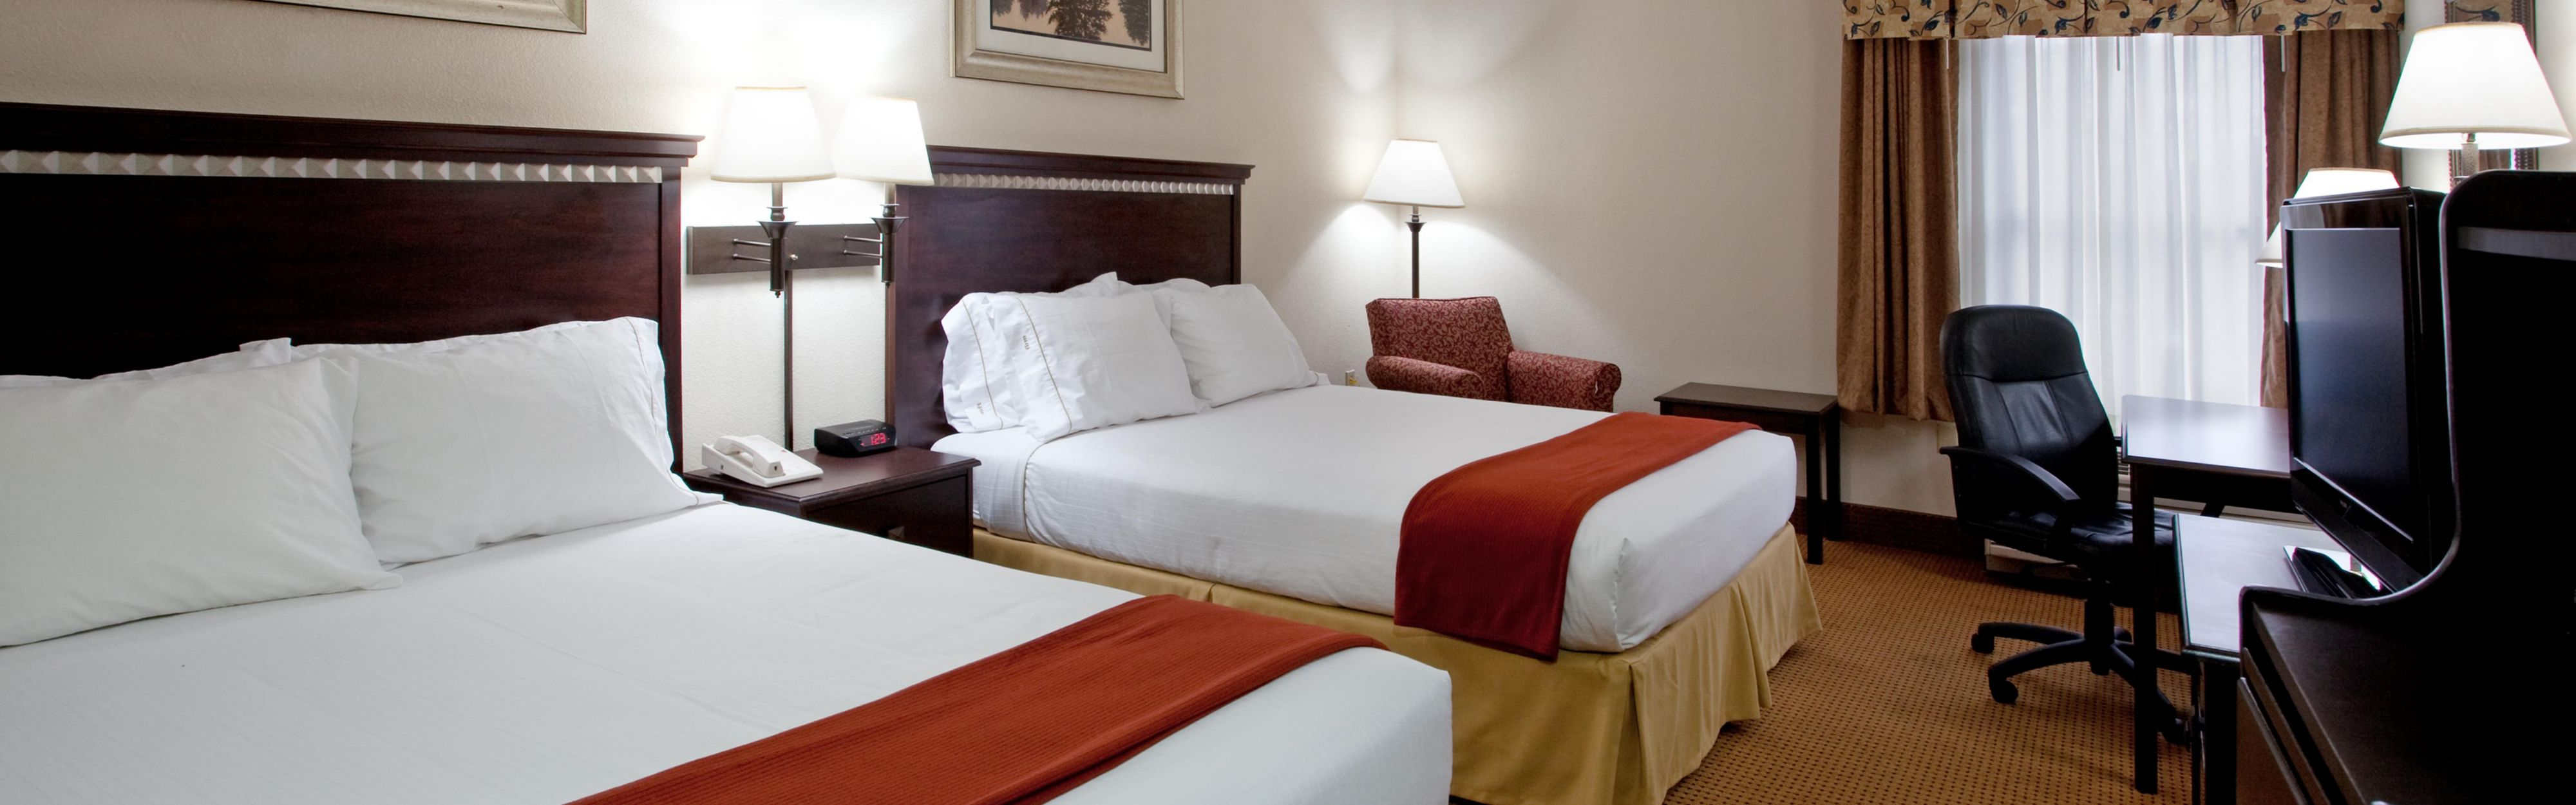 Holiday Inn Express & Suites Lexington-Hwy 378 image 1